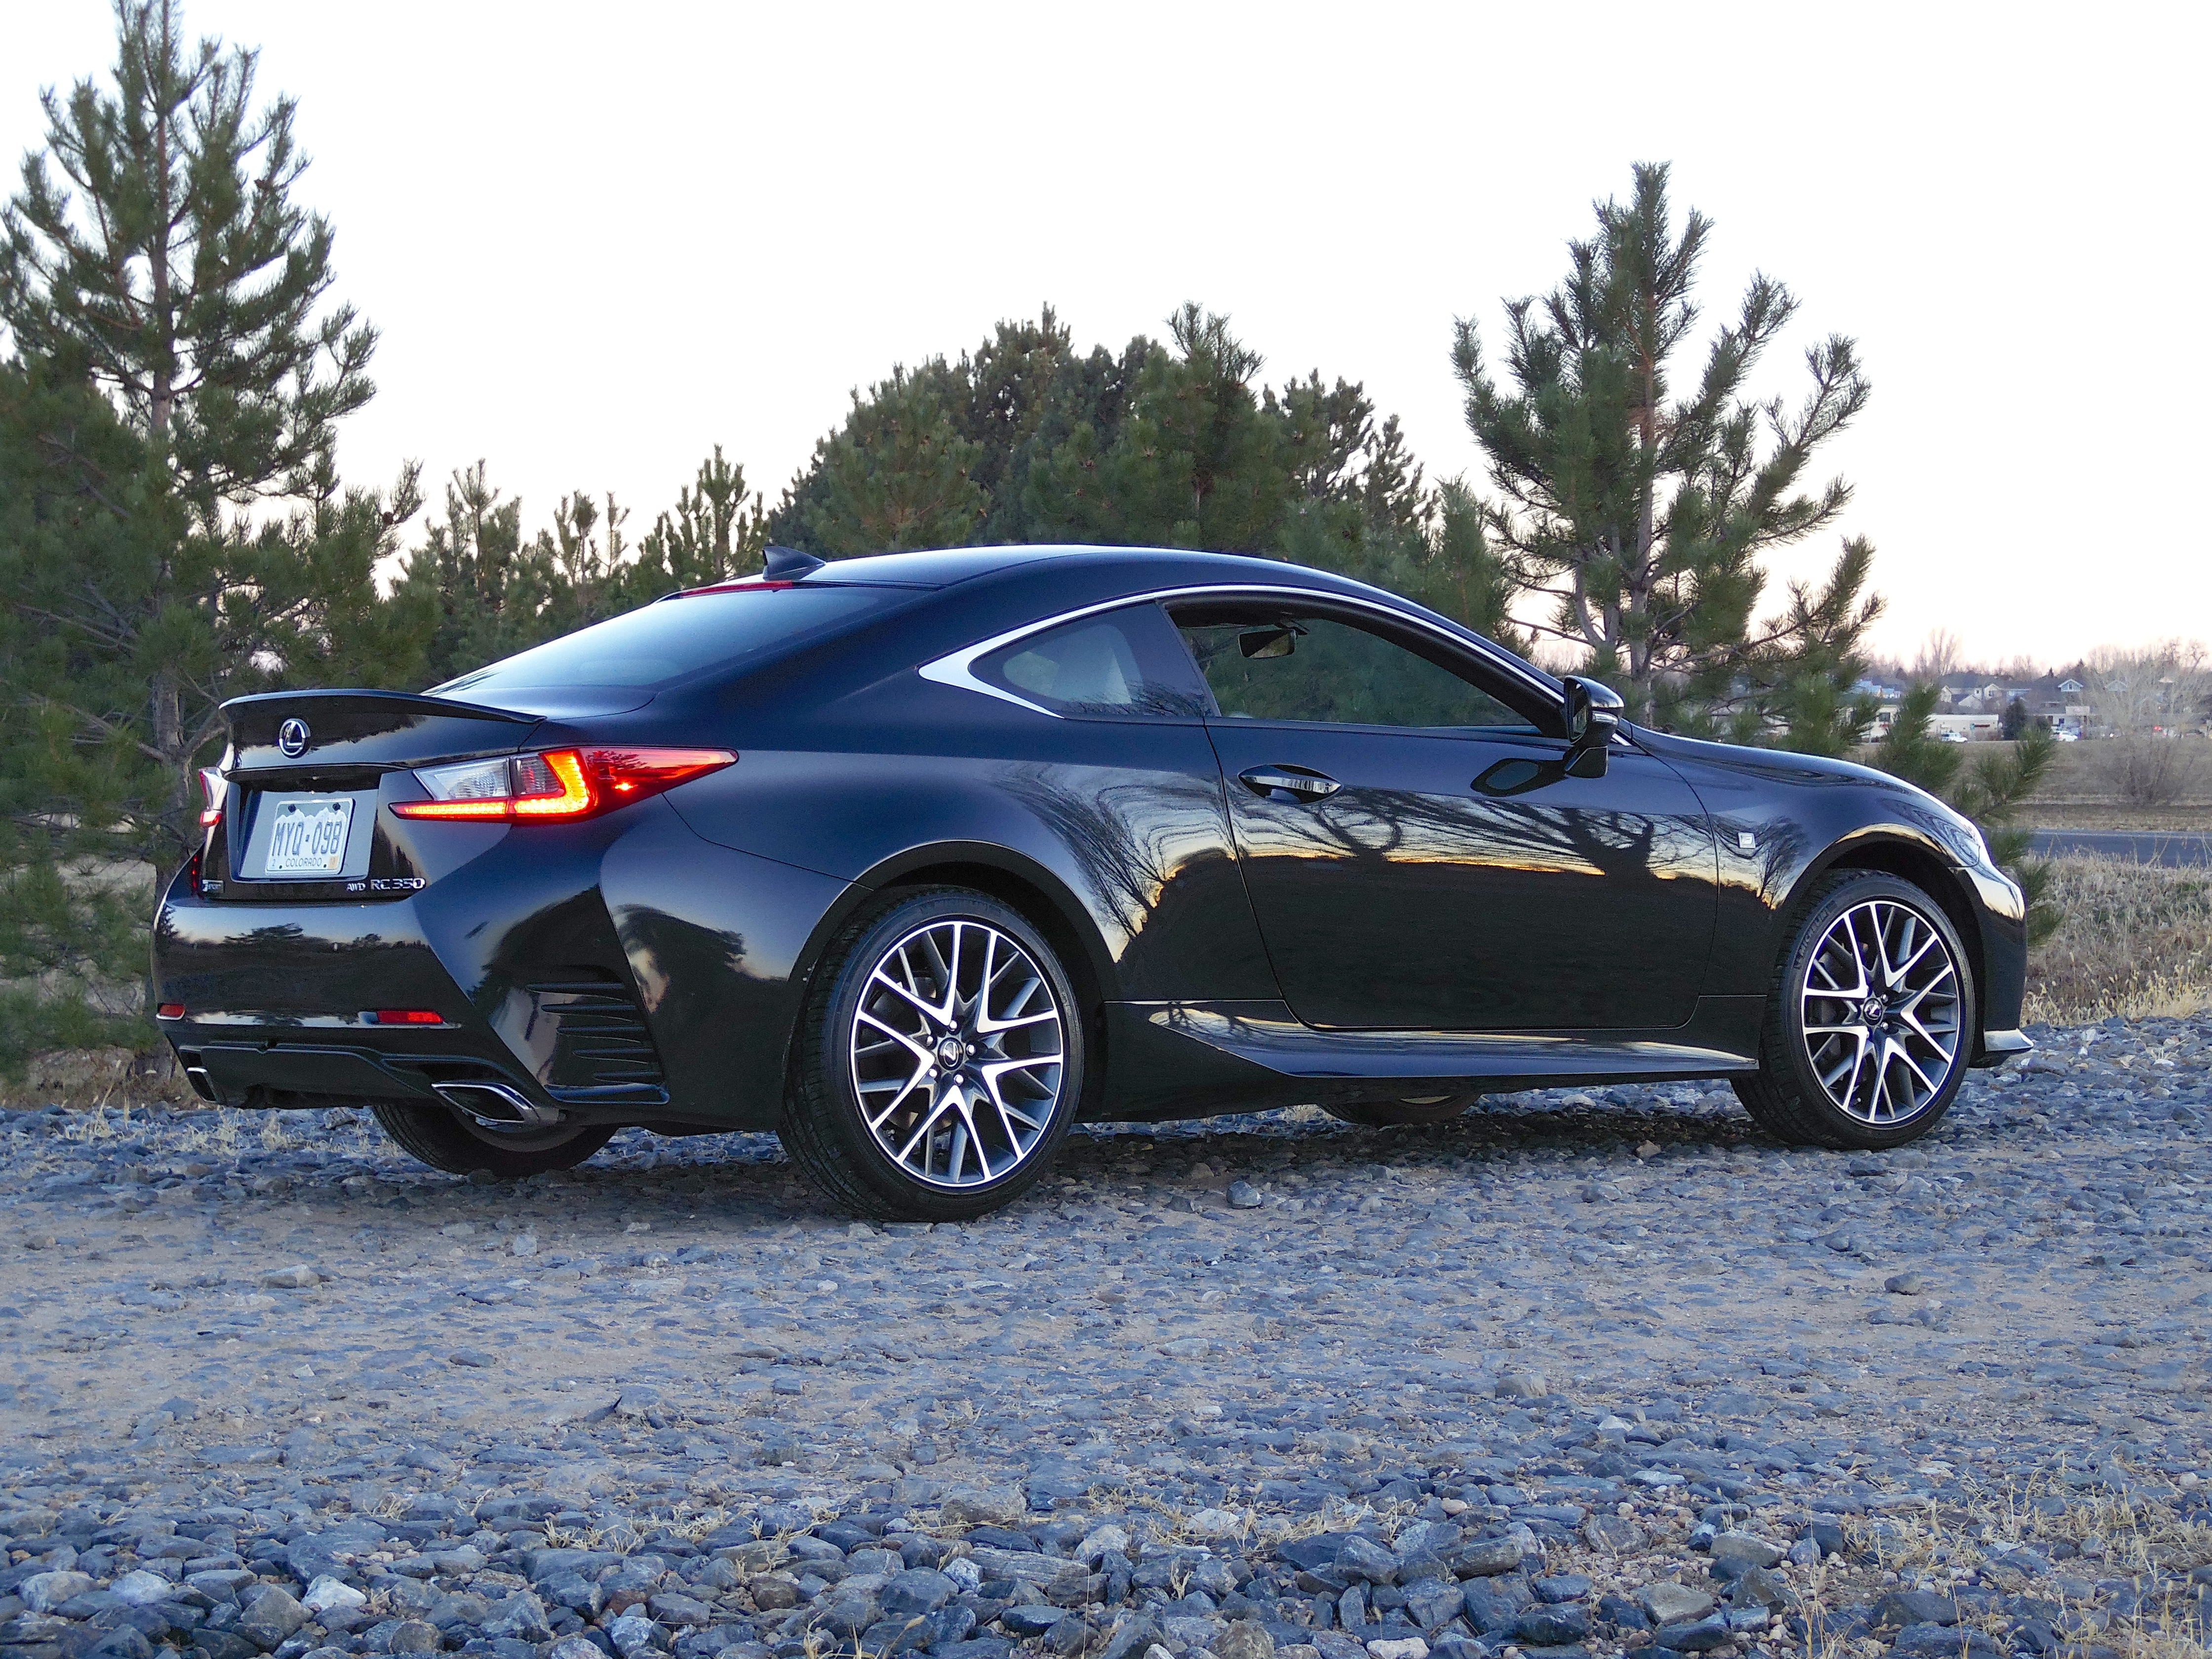 Recently I Drove Over To Pirate Radio With My Latest Test Car, The 2017  Lexus RC 350 F Sport, Which Was Painted Caviar (black) And Featured A Black  Leather ...